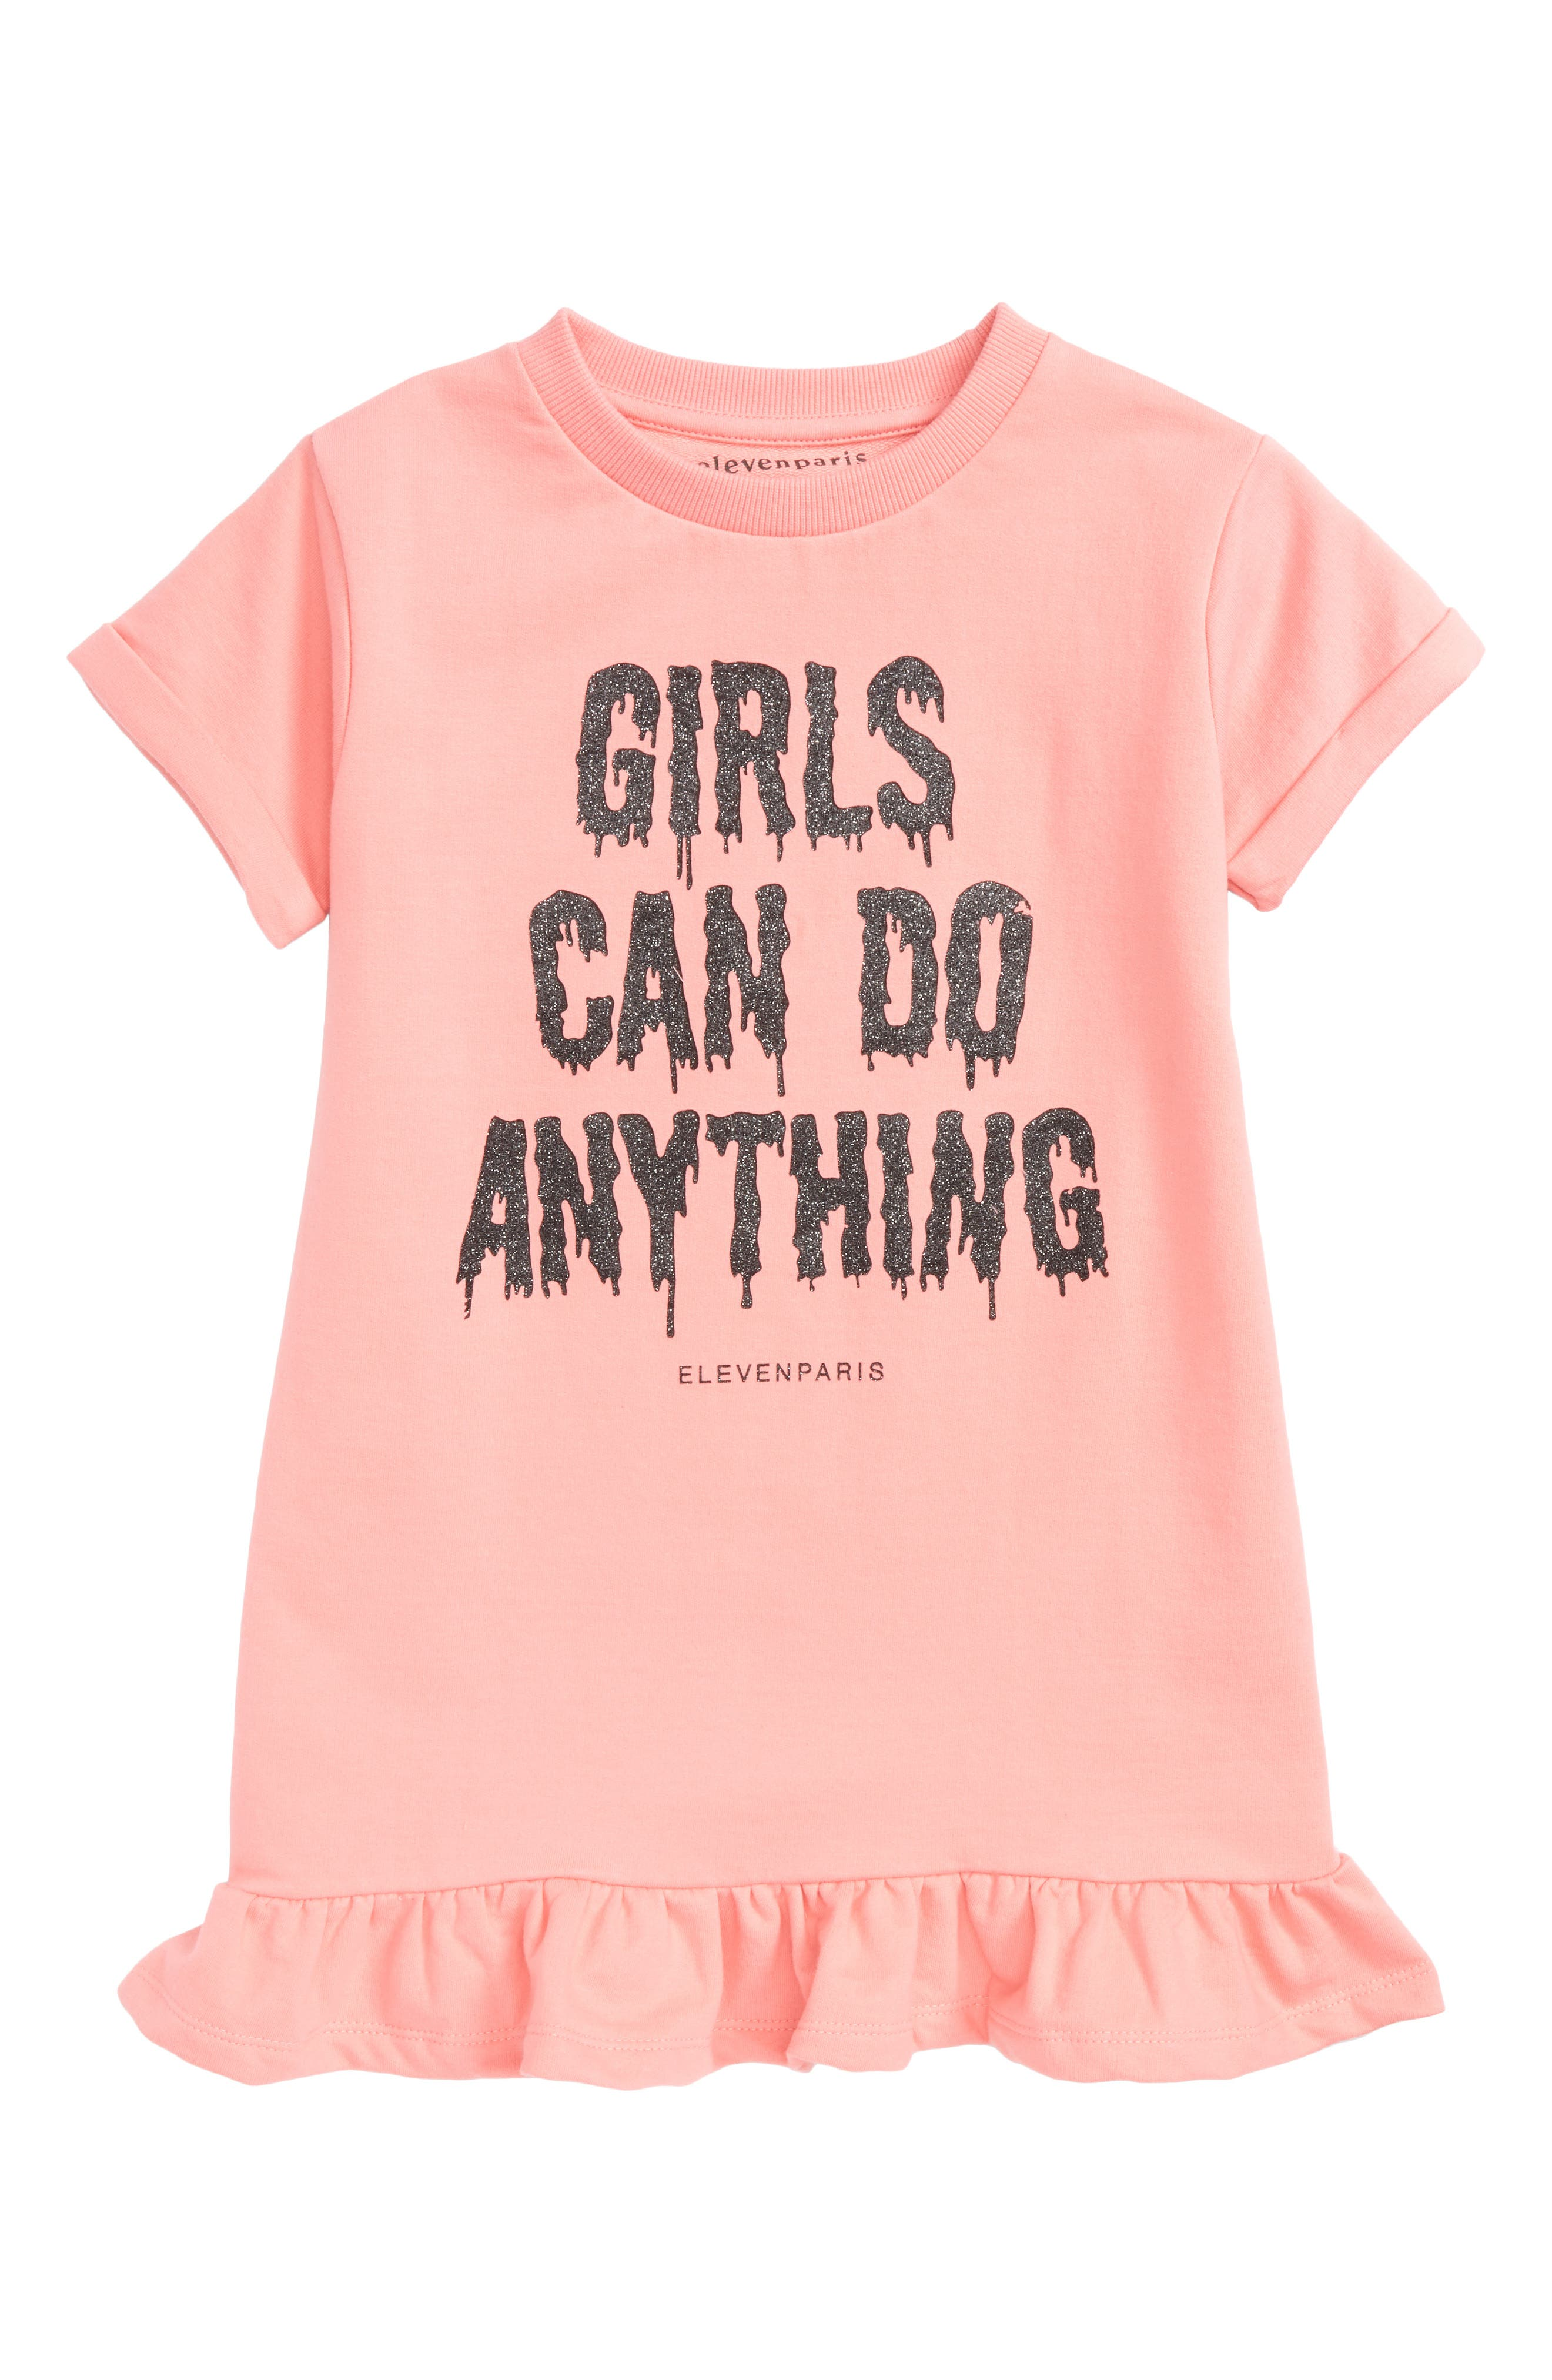 Alternate Image 1 Selected - Little ELEVENPARIS Girls Can Do Anything Graphic Dress (Little Girls & Big Girls)